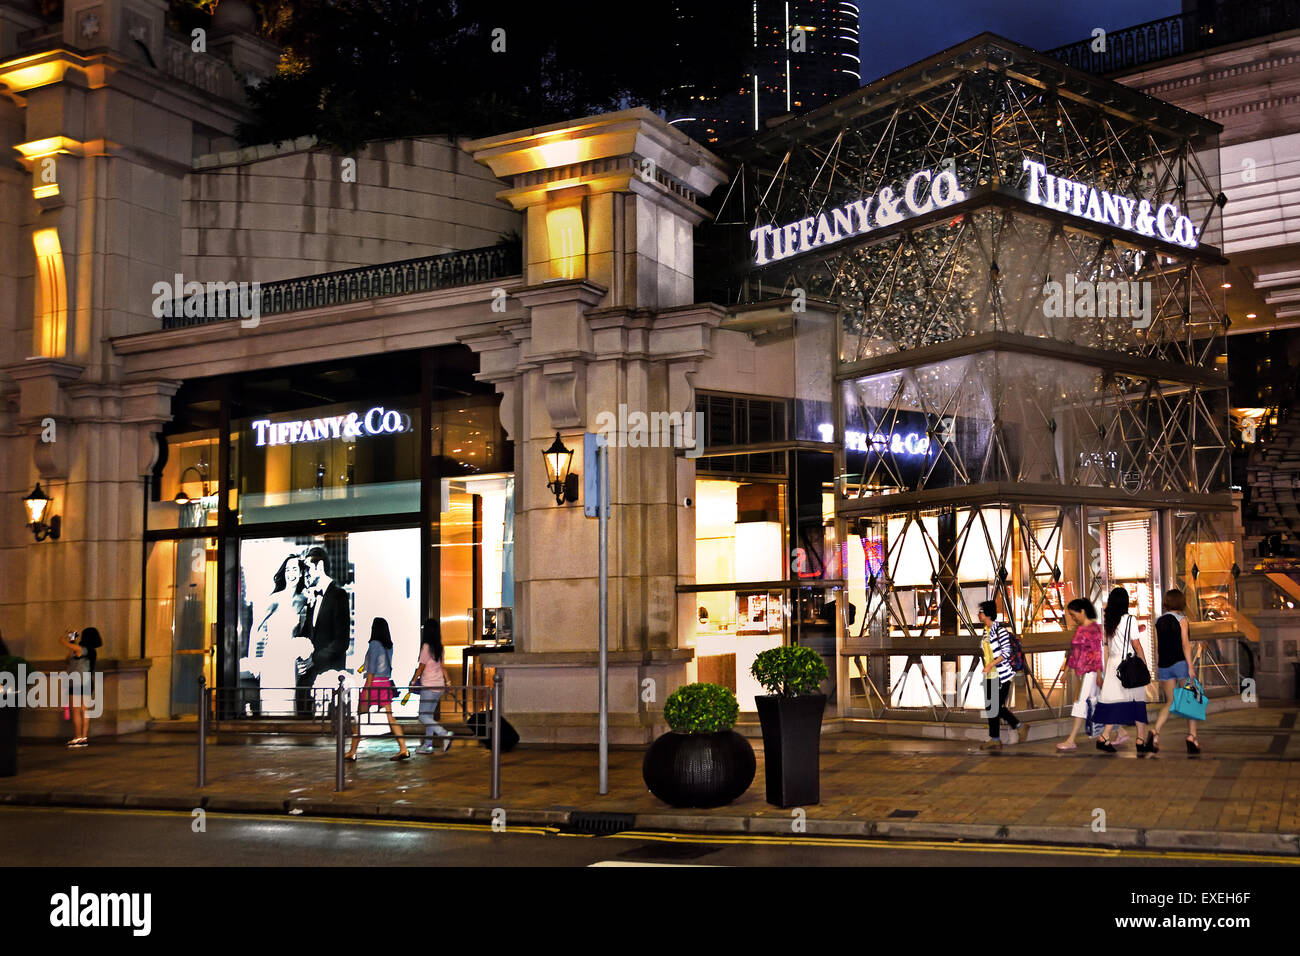 tiffany jewelry outlet australia